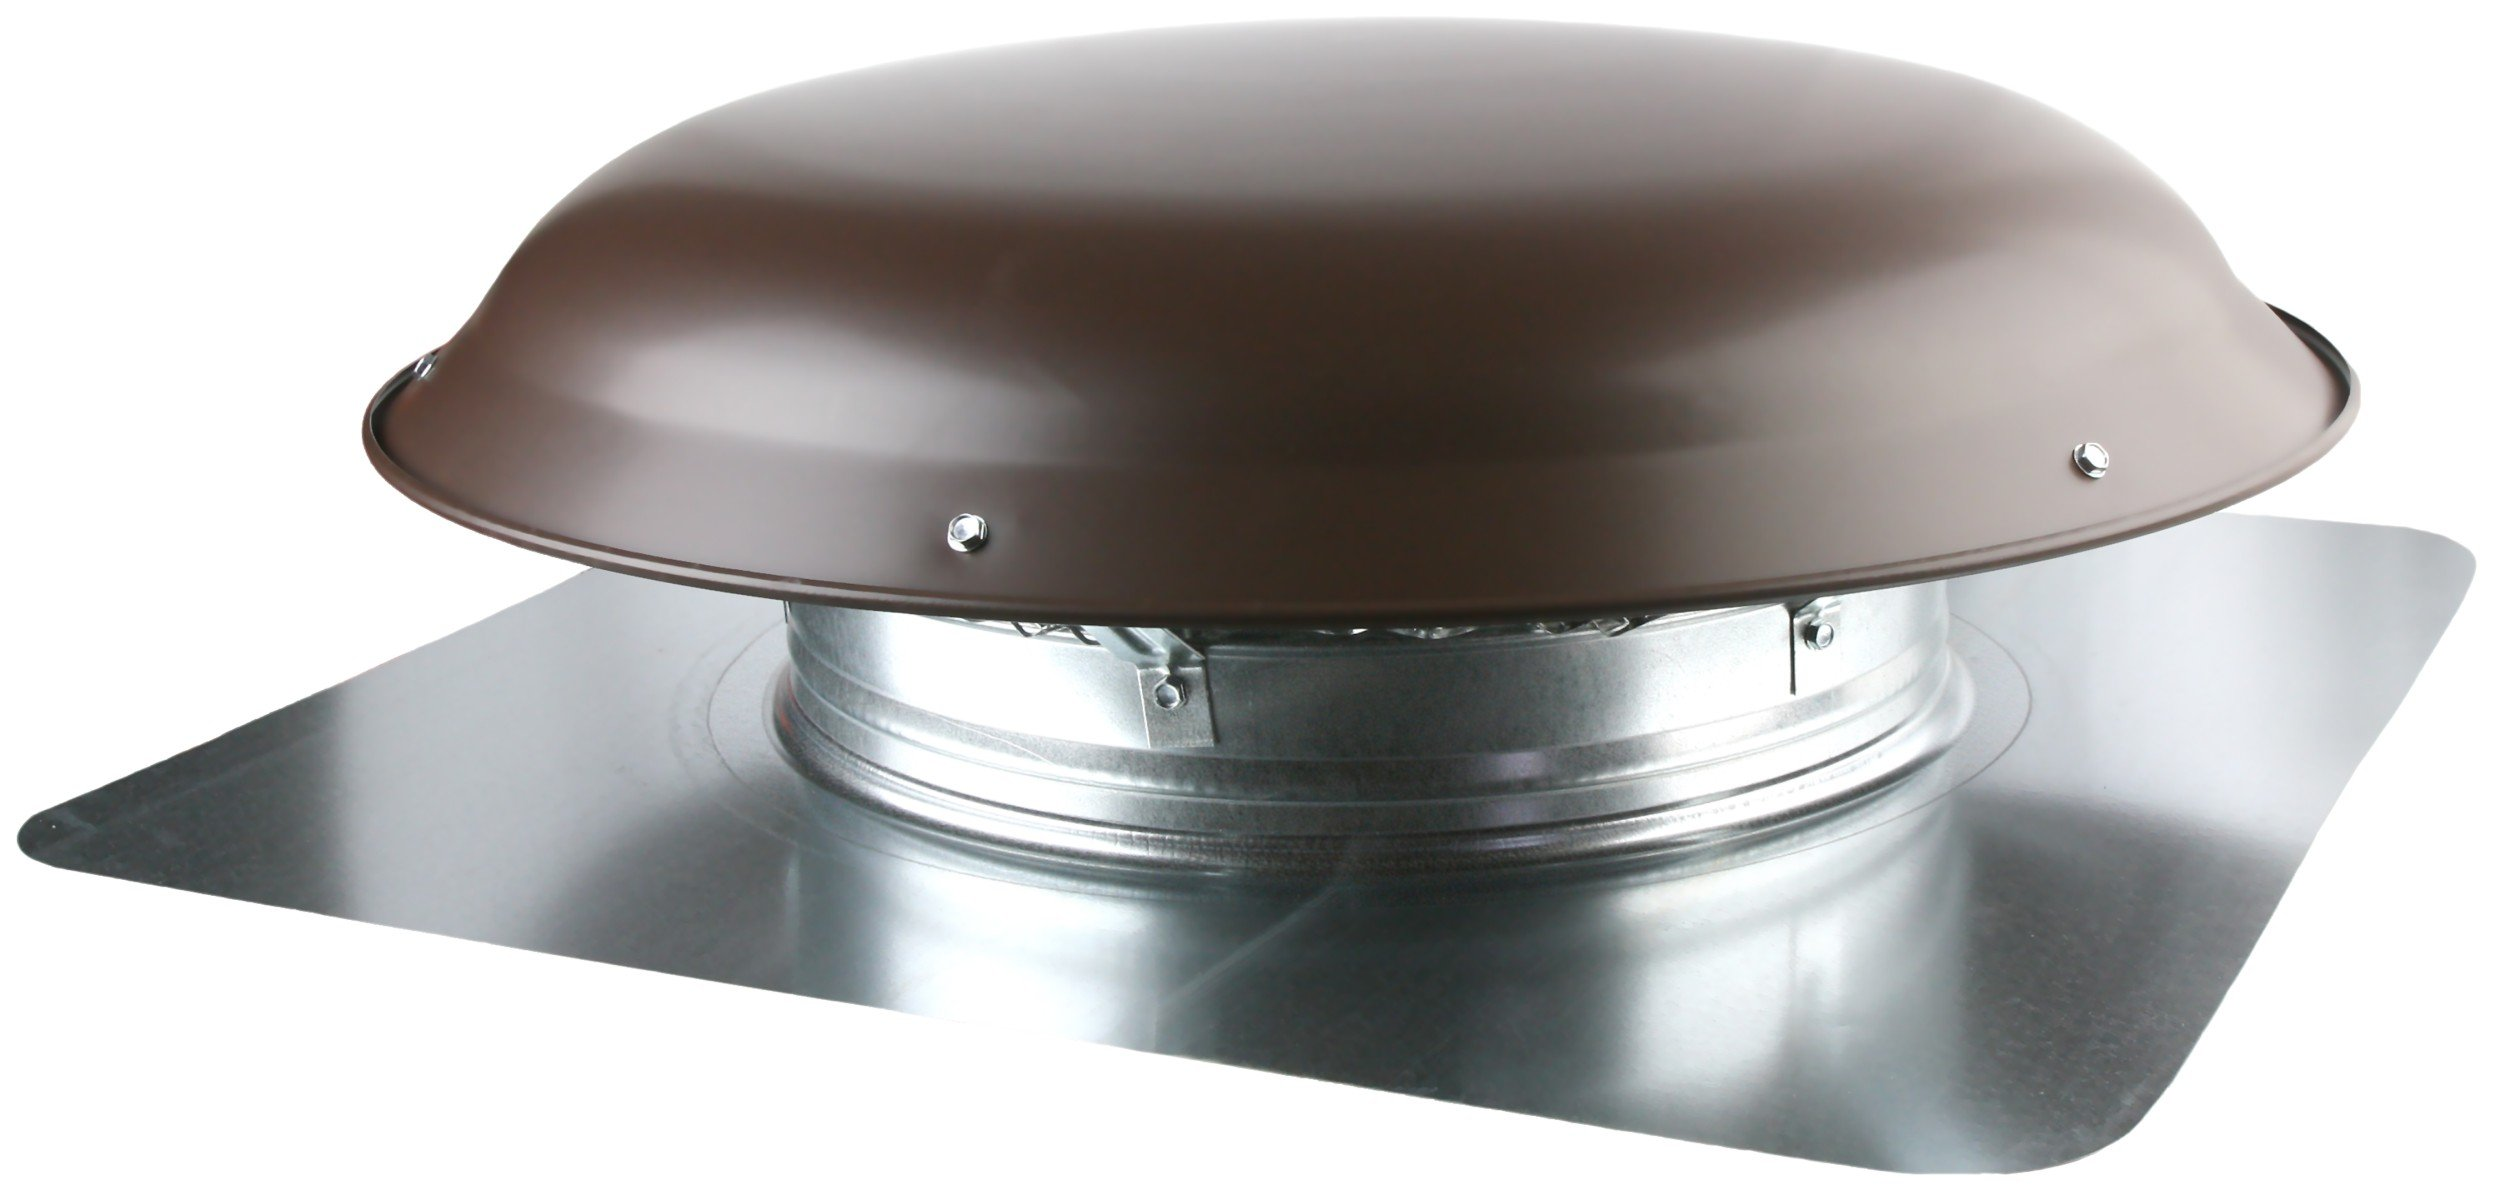 Ventamatic VX25 BRNUPS Static Galvanized Steel Dome and Flange Roof Vent, Brown